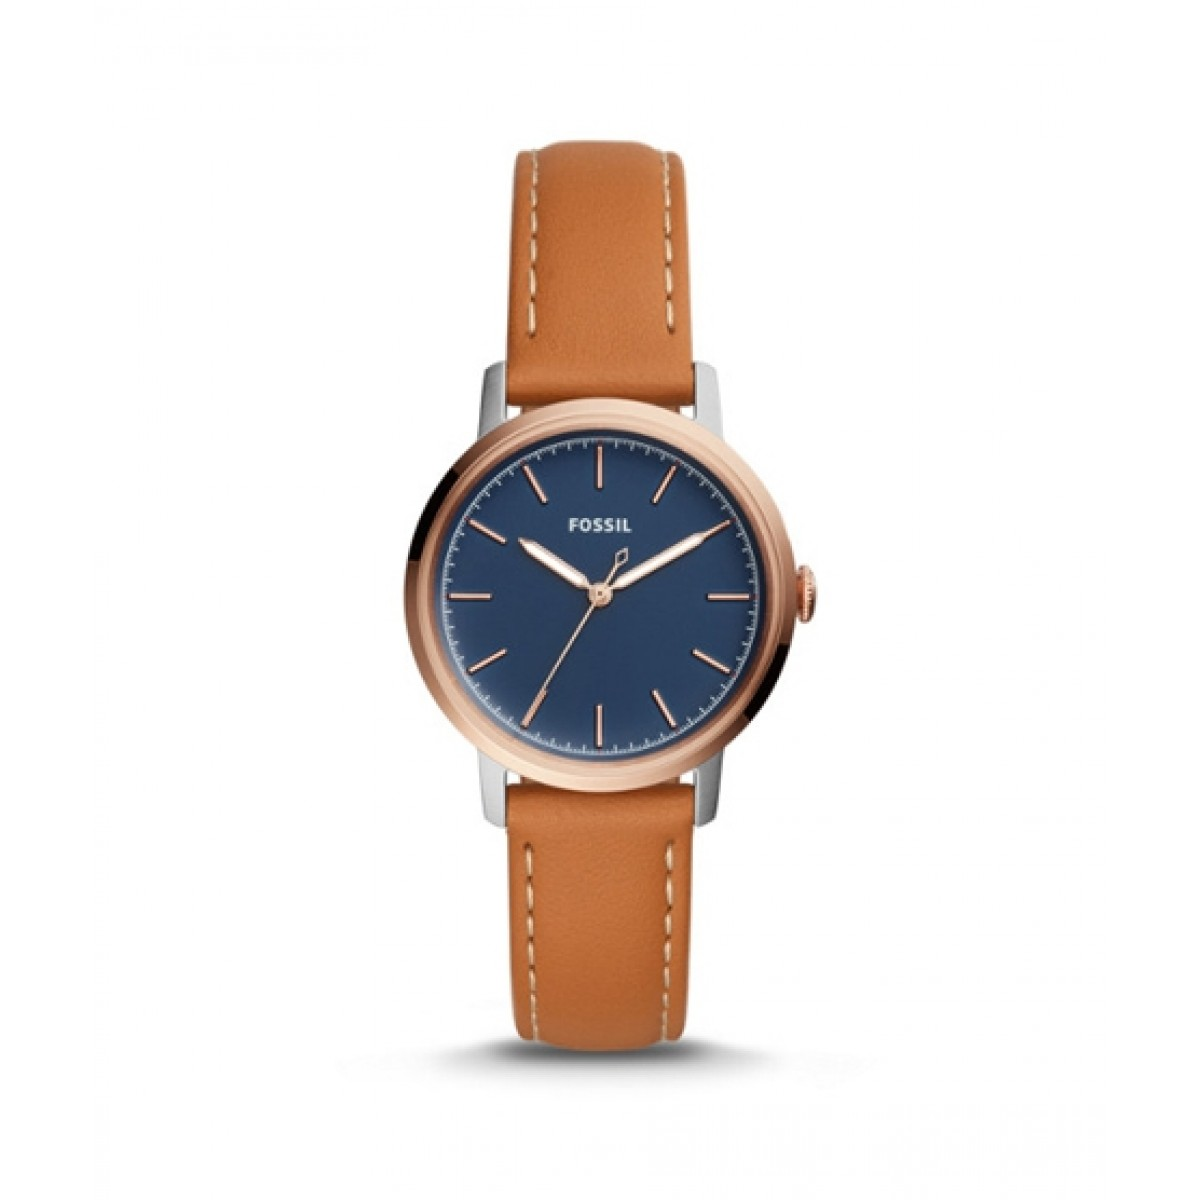 08a4eeb66 Fossil Neely Three-Hand Women's Watch Price in Pakistan | Buy Fossil  Women's Watch Luggage Leather (ES4255P) | iShopping.pk